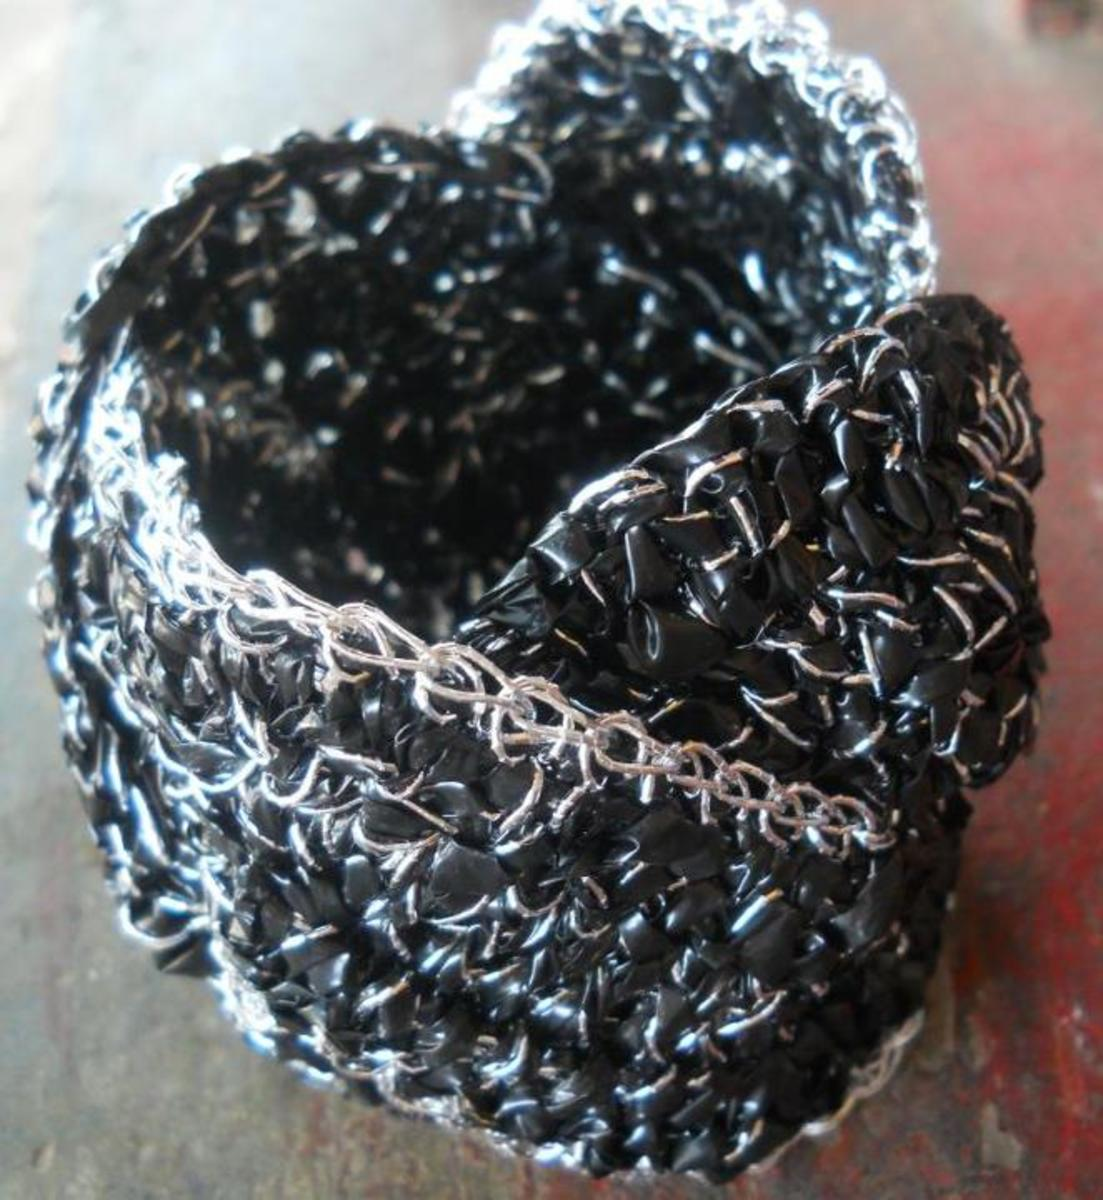 Materials: KYOTOTEX Silver Radiant Yarn plied with 1/4-in single-strand plarn from black garbage bag, and #7 steel hook (the one used for crochet thread)